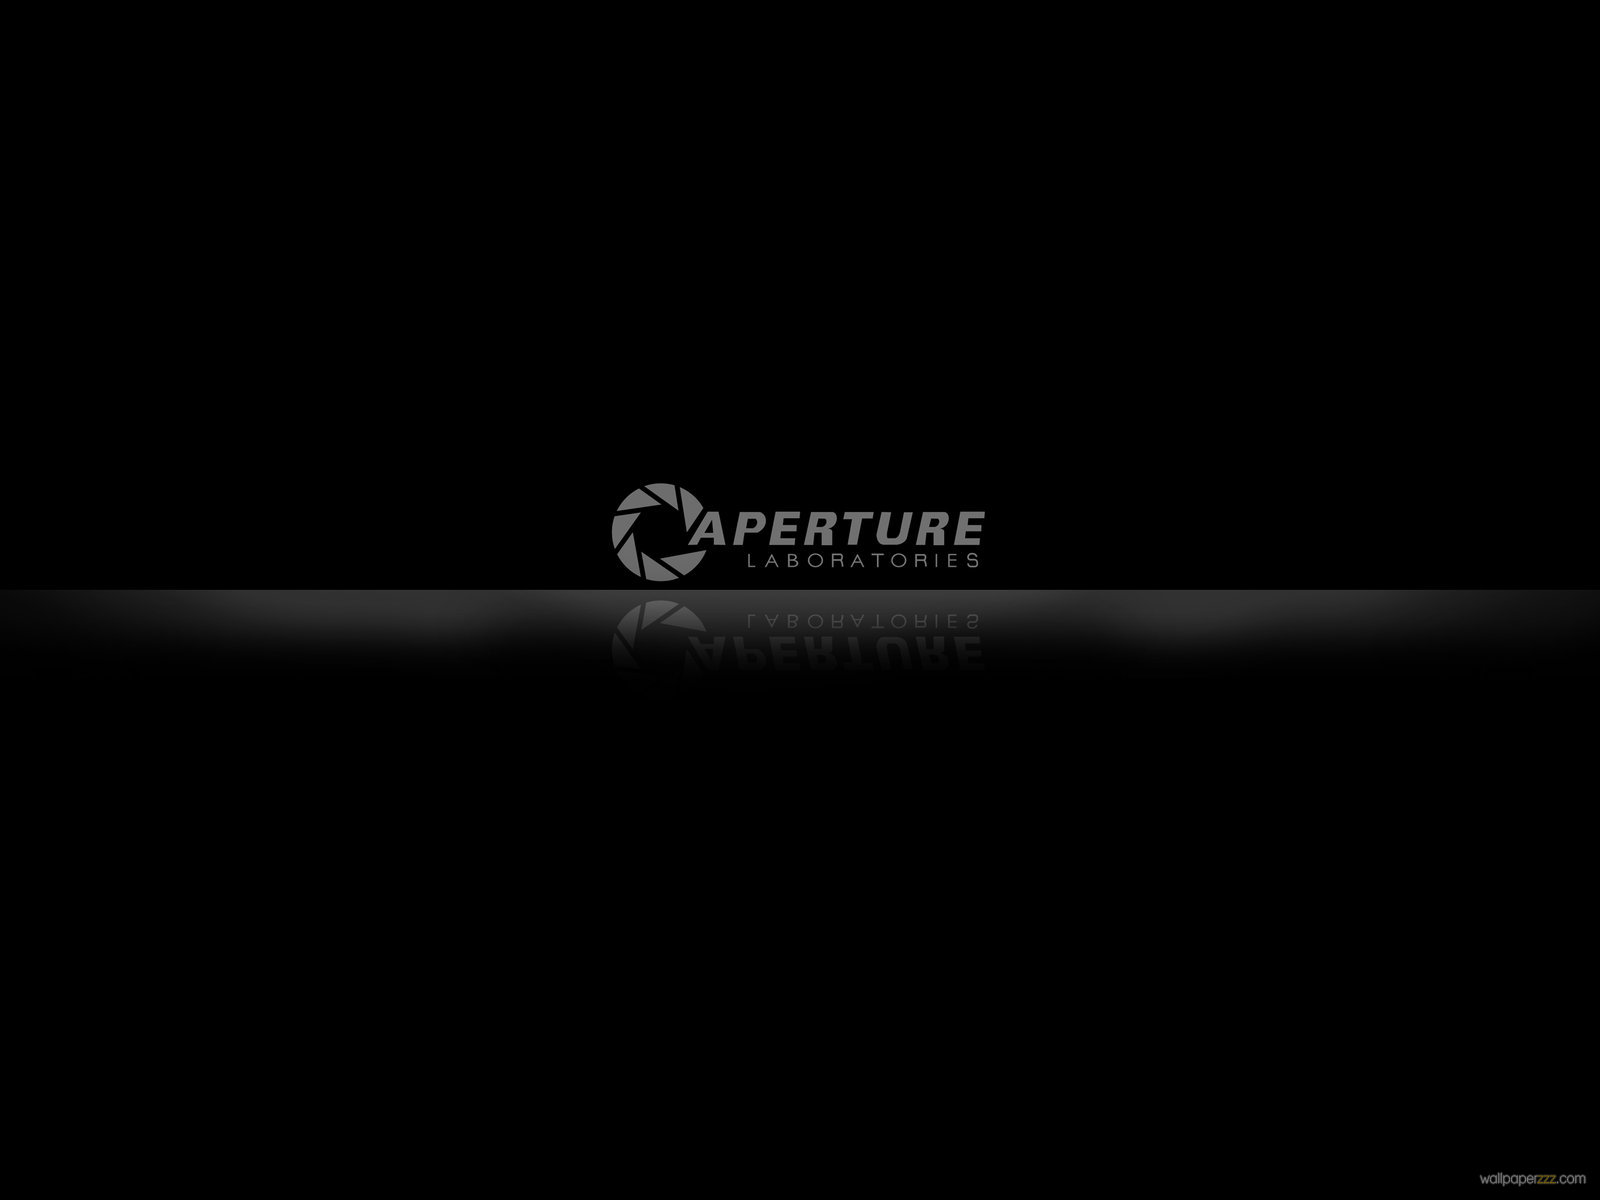 Download Aperture Logo On A Glossy Surface Wallpaper—Free Wallpaper